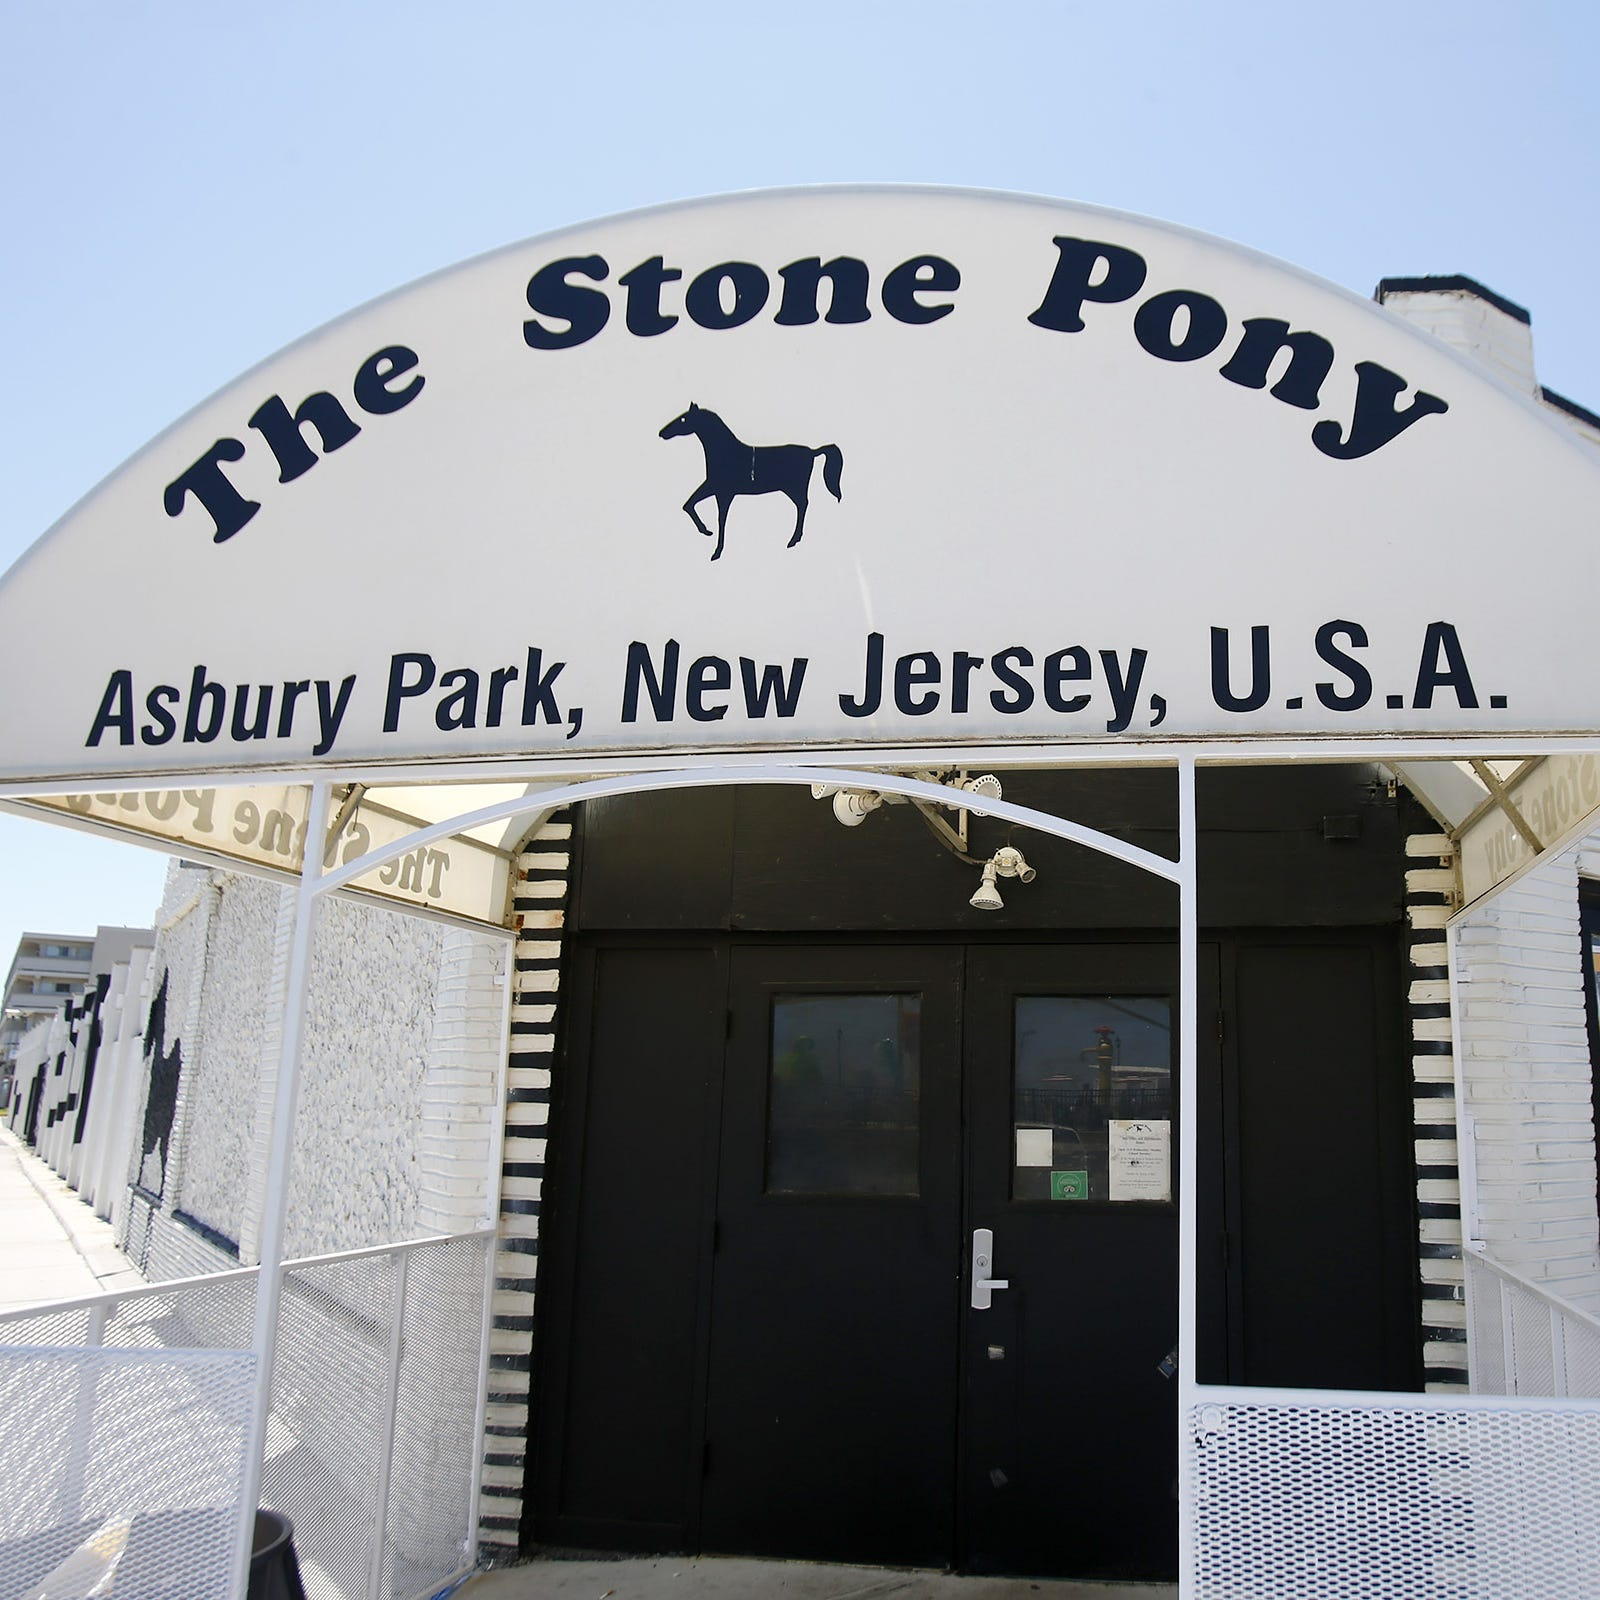 NJ beer: Stone Pony beer announced for Asbury Park club's 45th anniversary